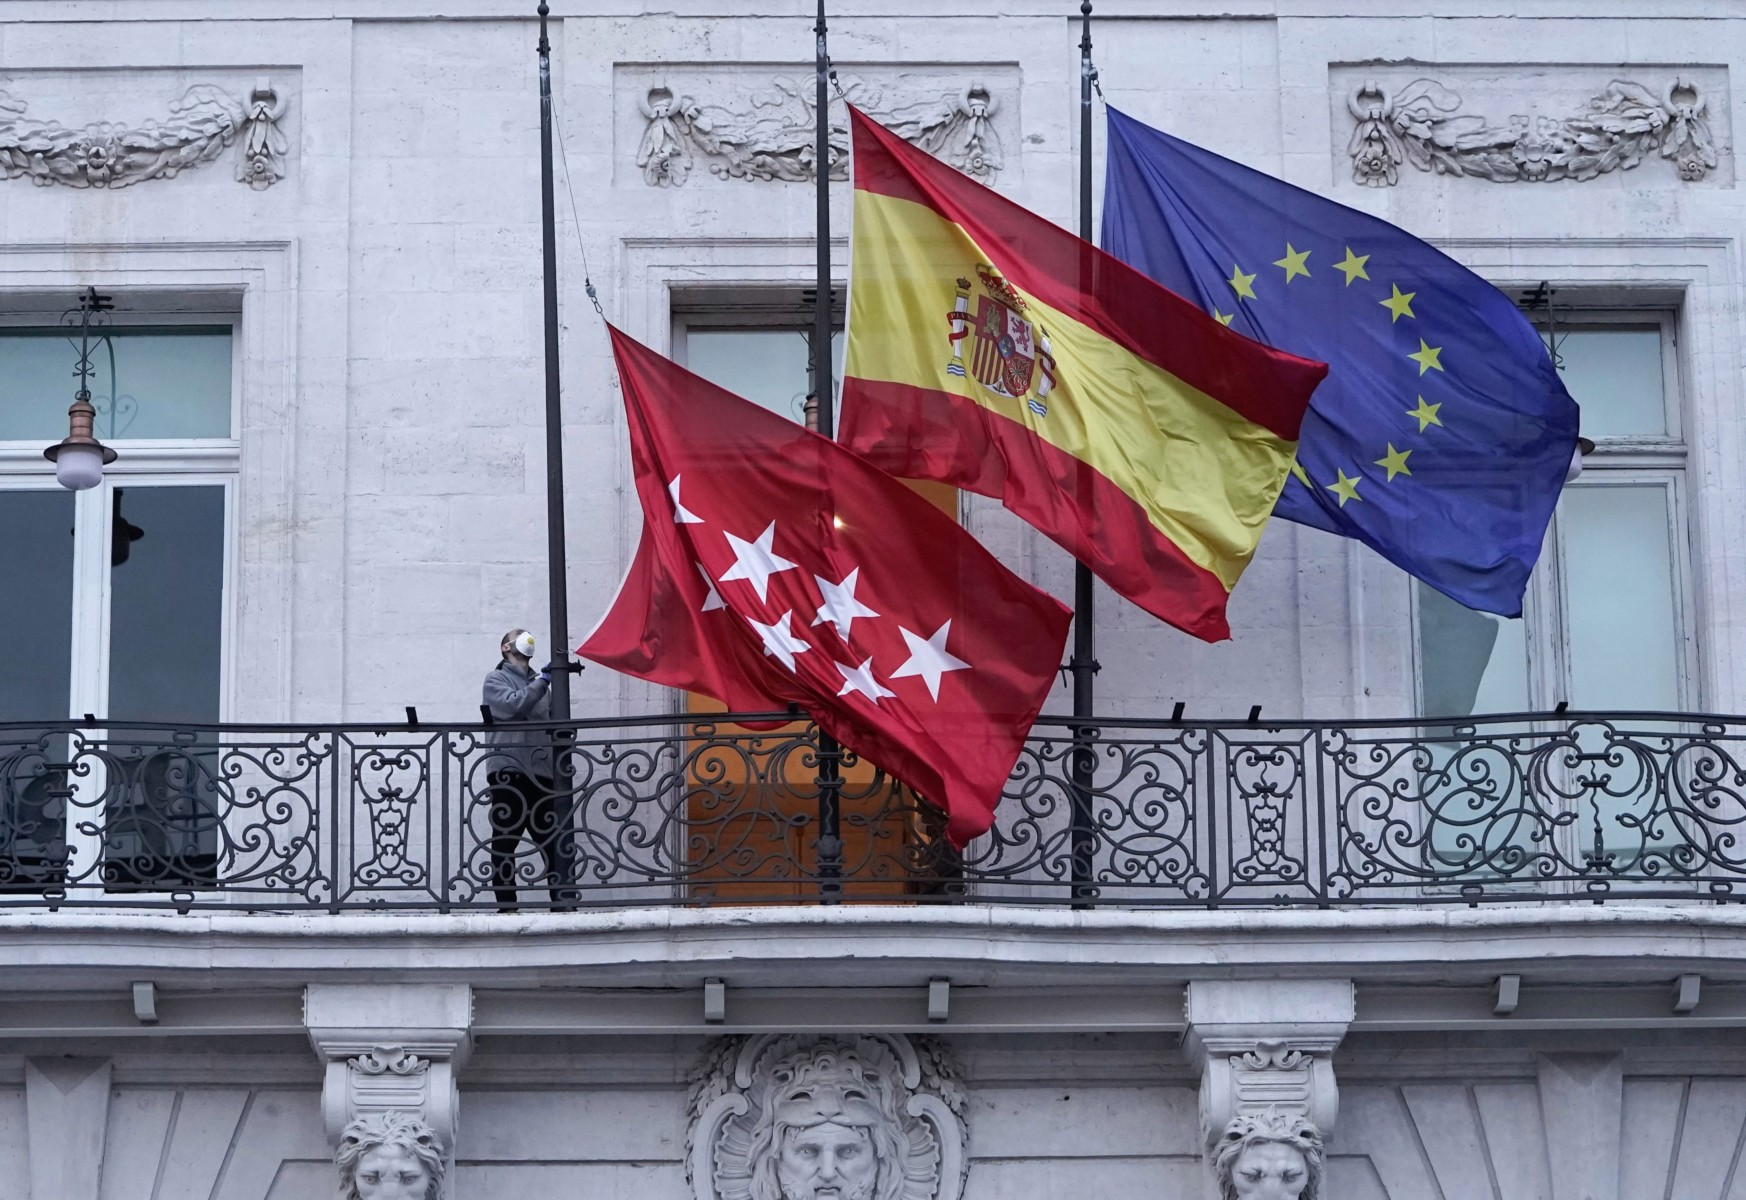 Spain's government has ordered flags be flown at half-mast as a mark of respect to the victims